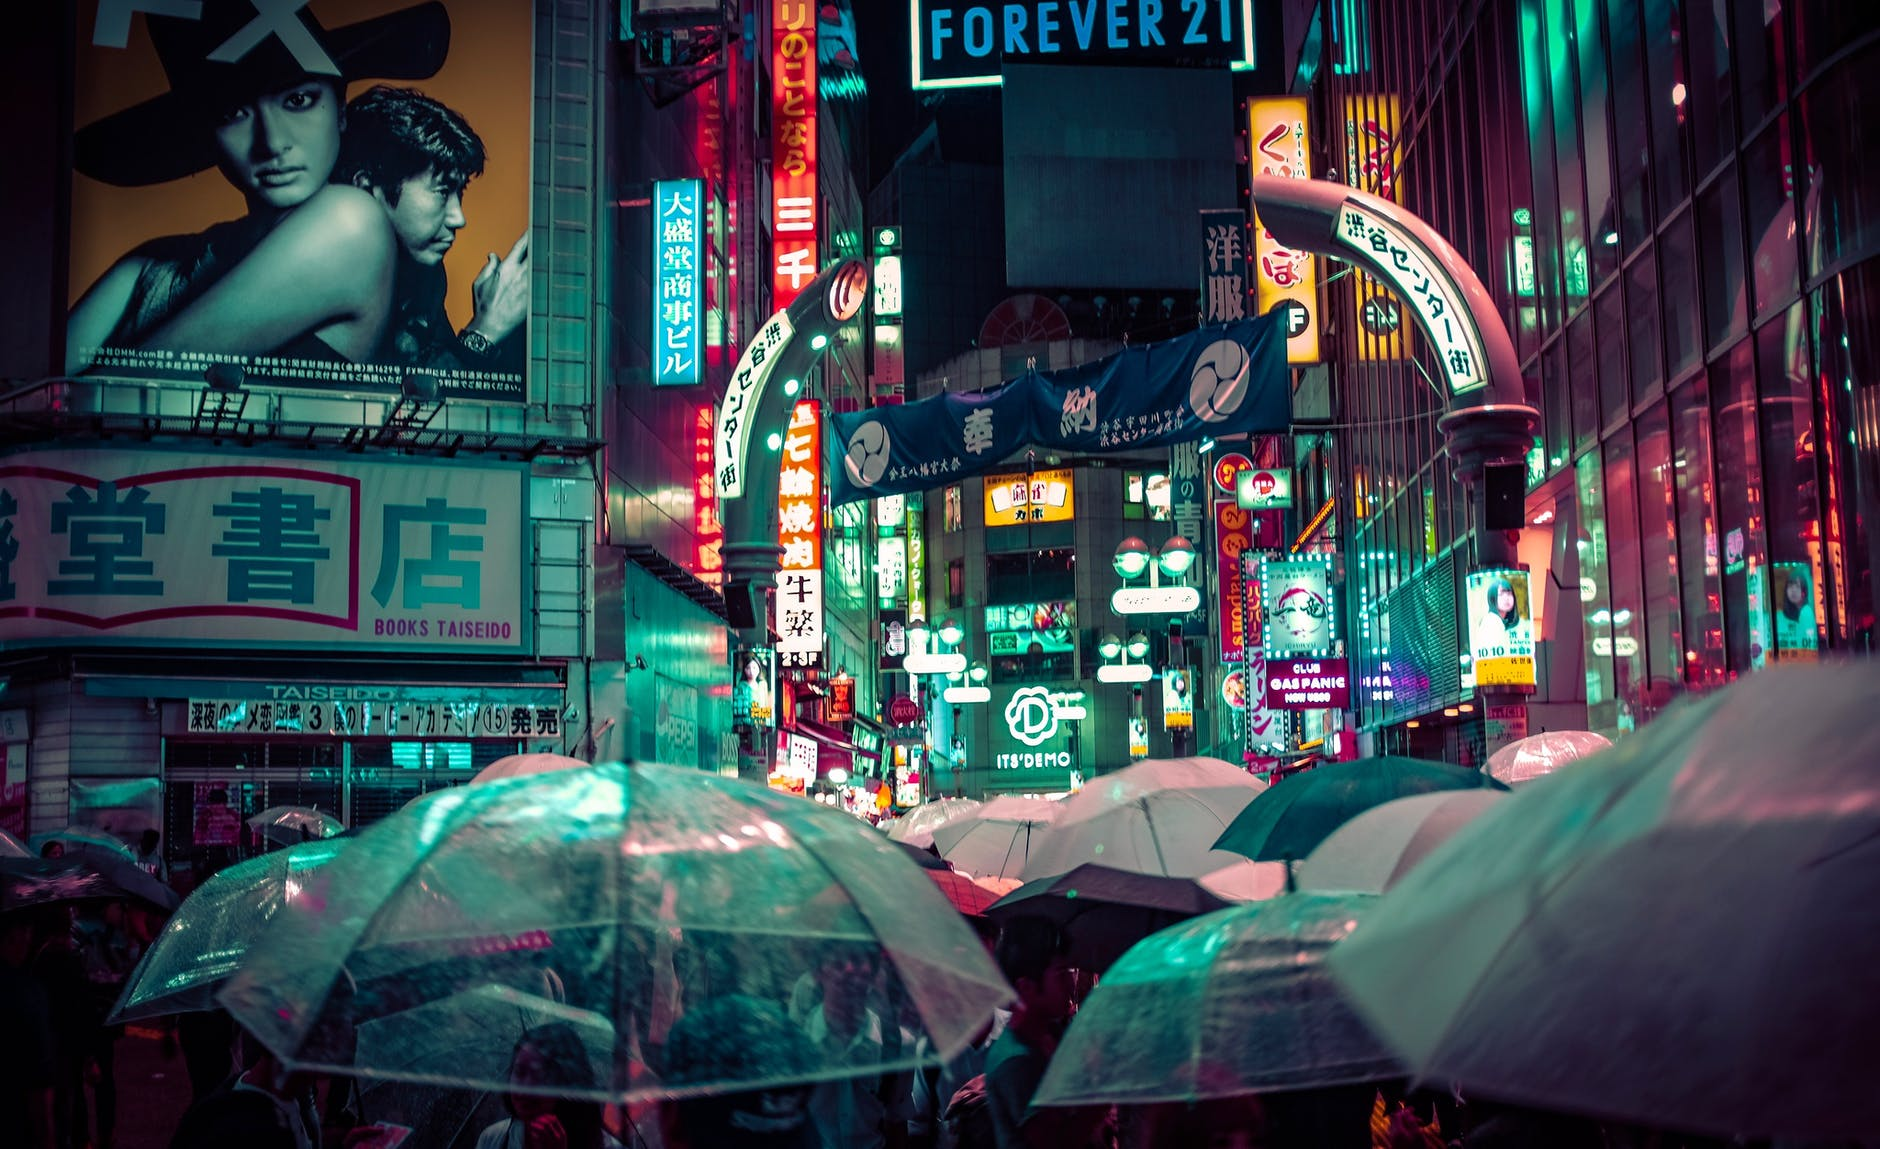 night city screenshot of people with umbrellas with a cyberpunk vibe